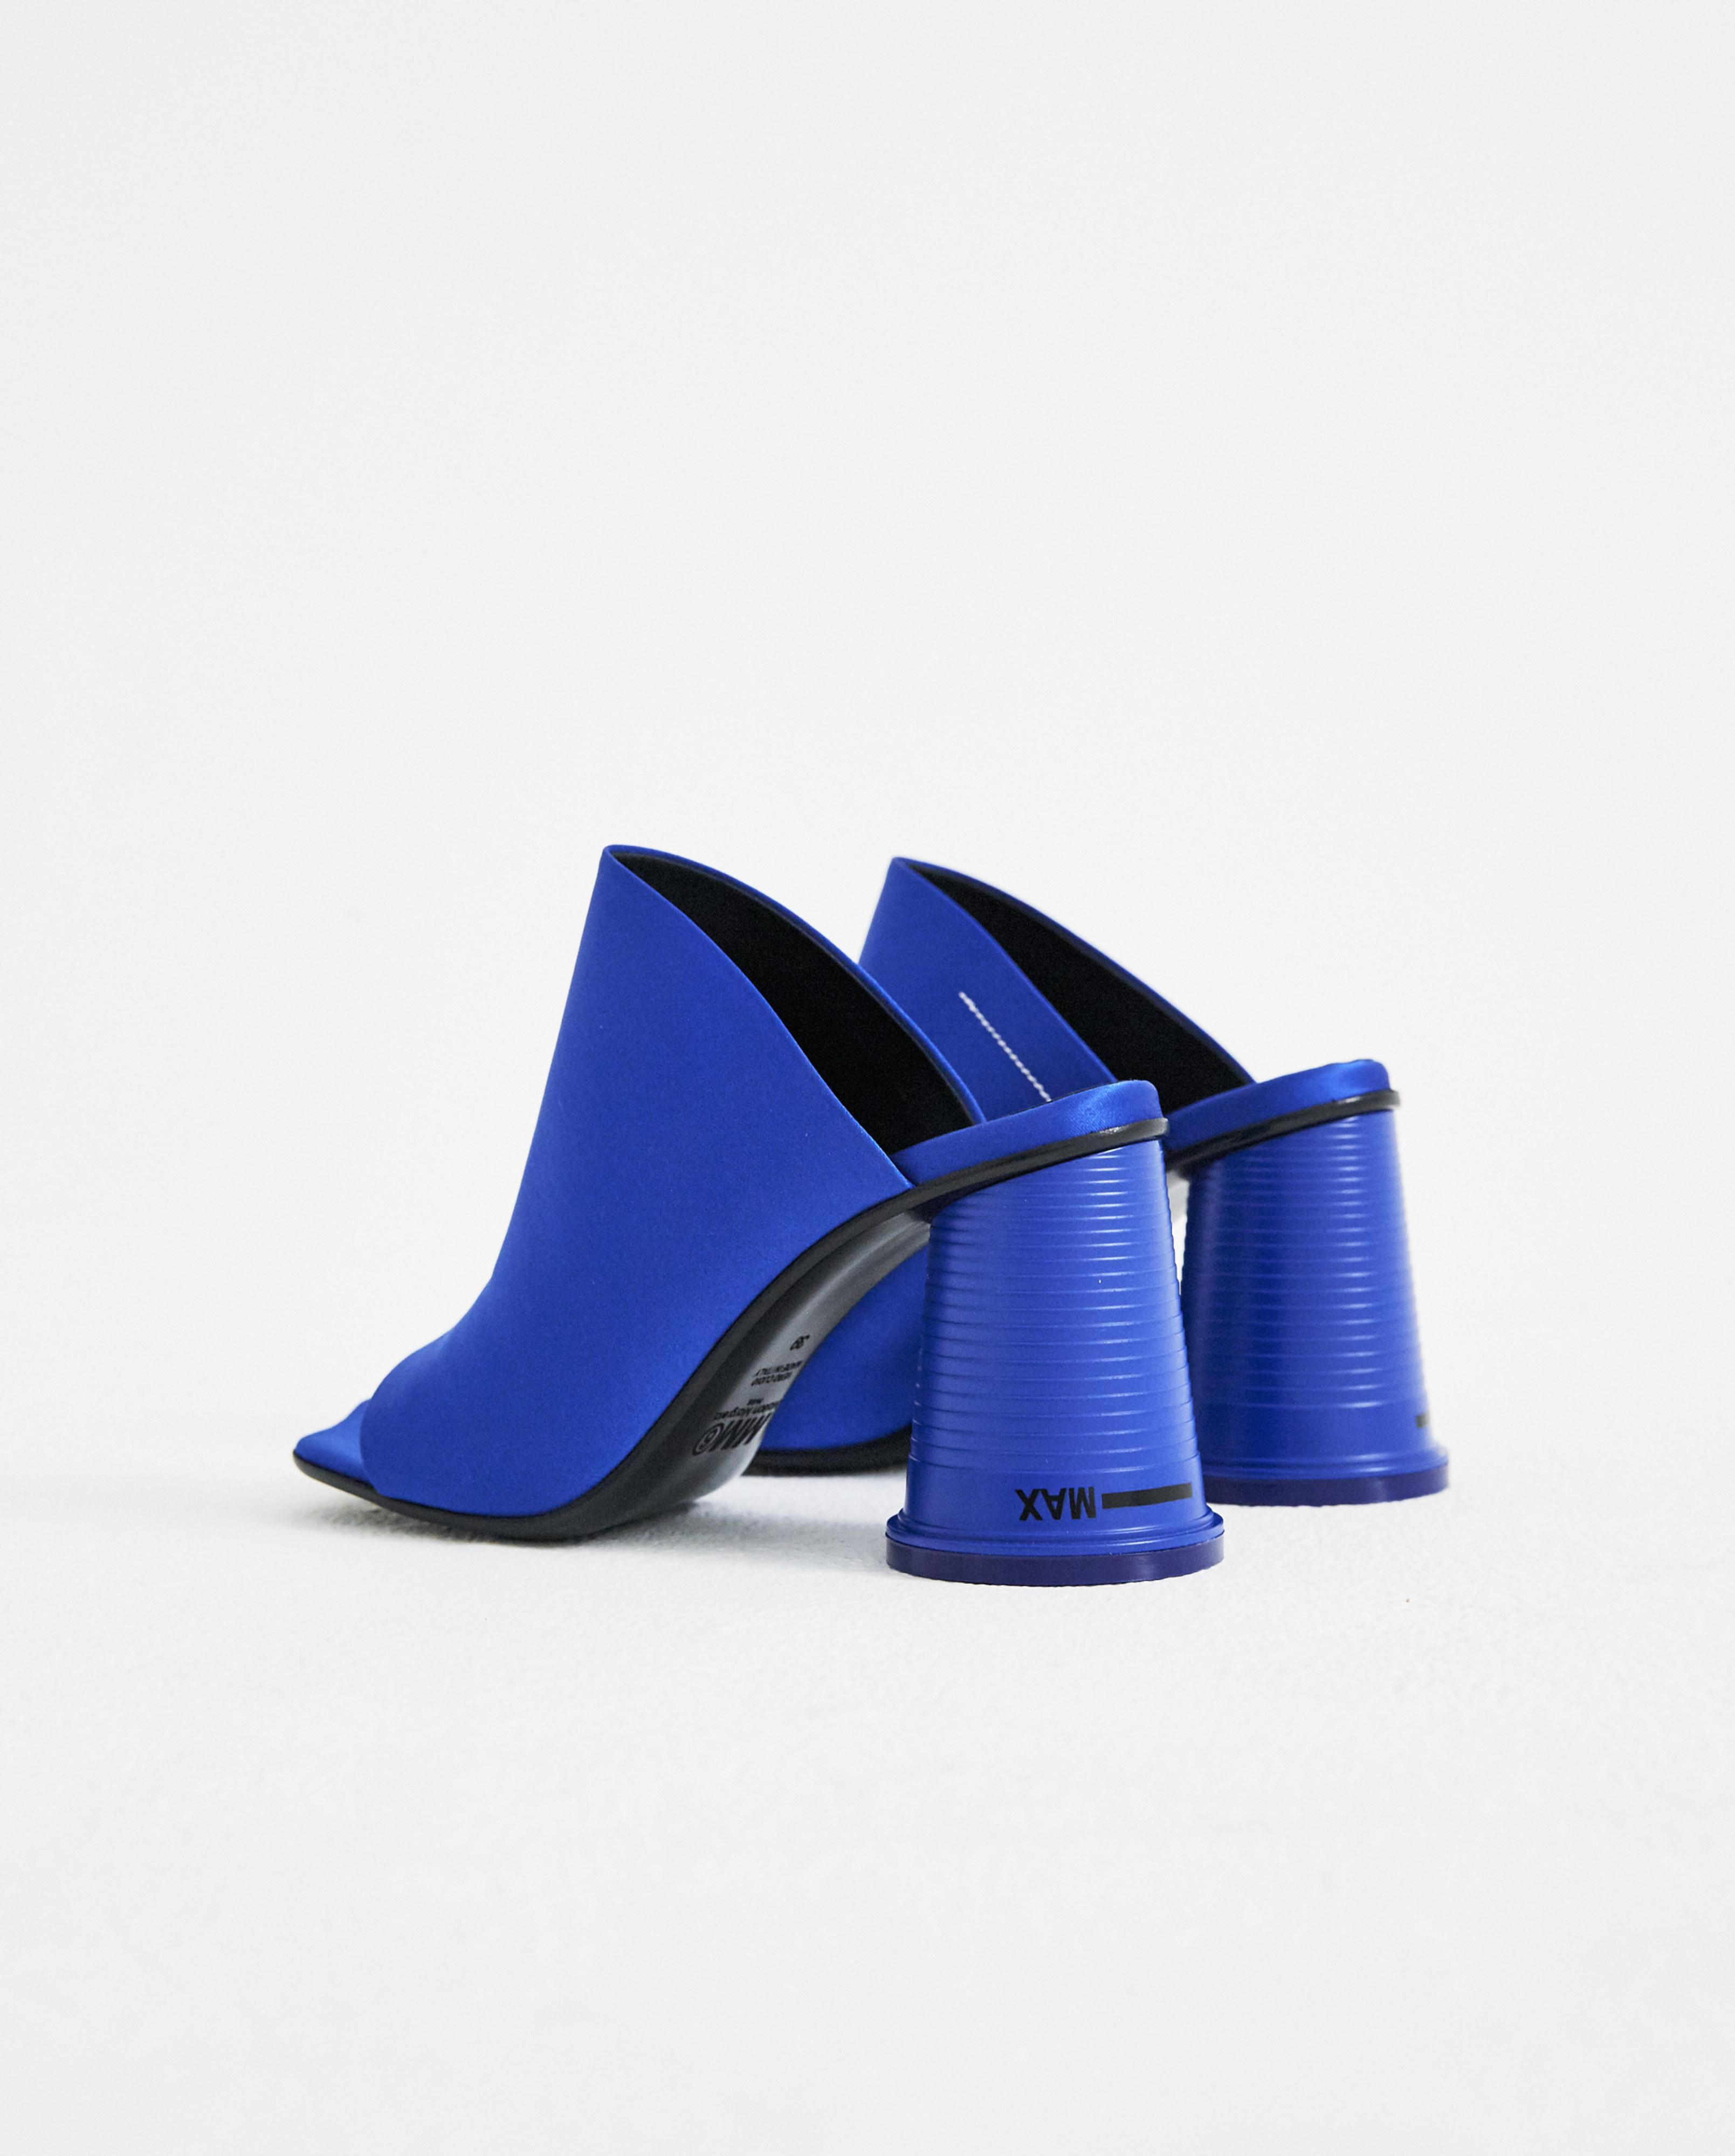 Maison Martin Margiela Satin Cup To Go Sandals Outlet Looking For kvESVGwg